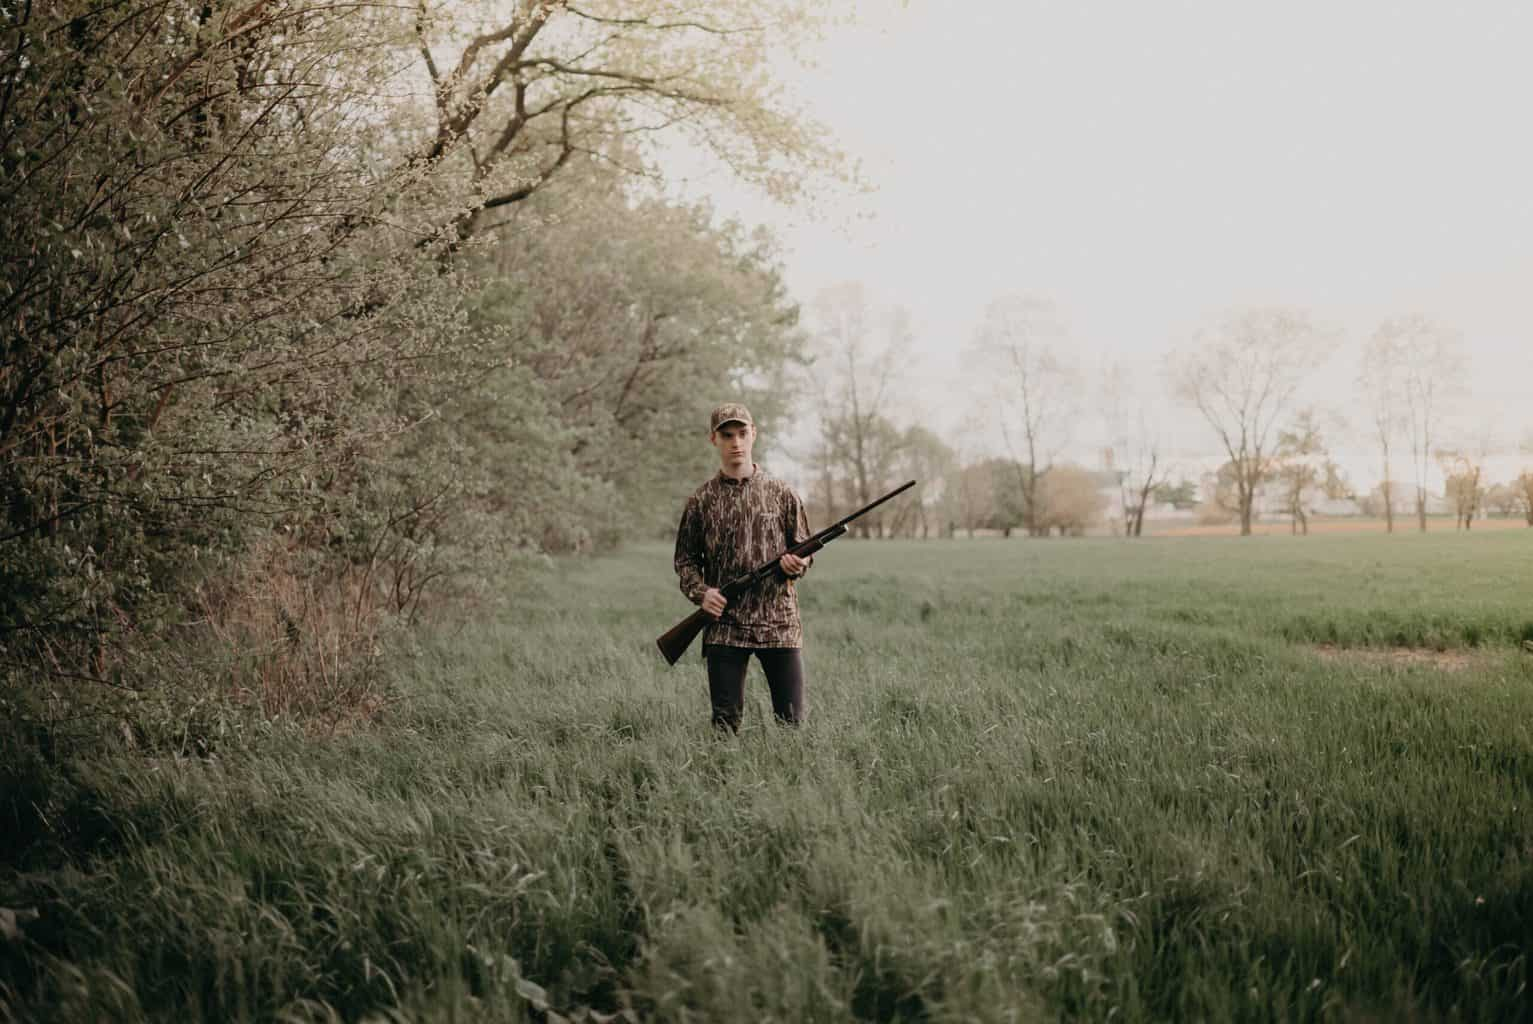 person holding a rifle in an open area with a lot of grass